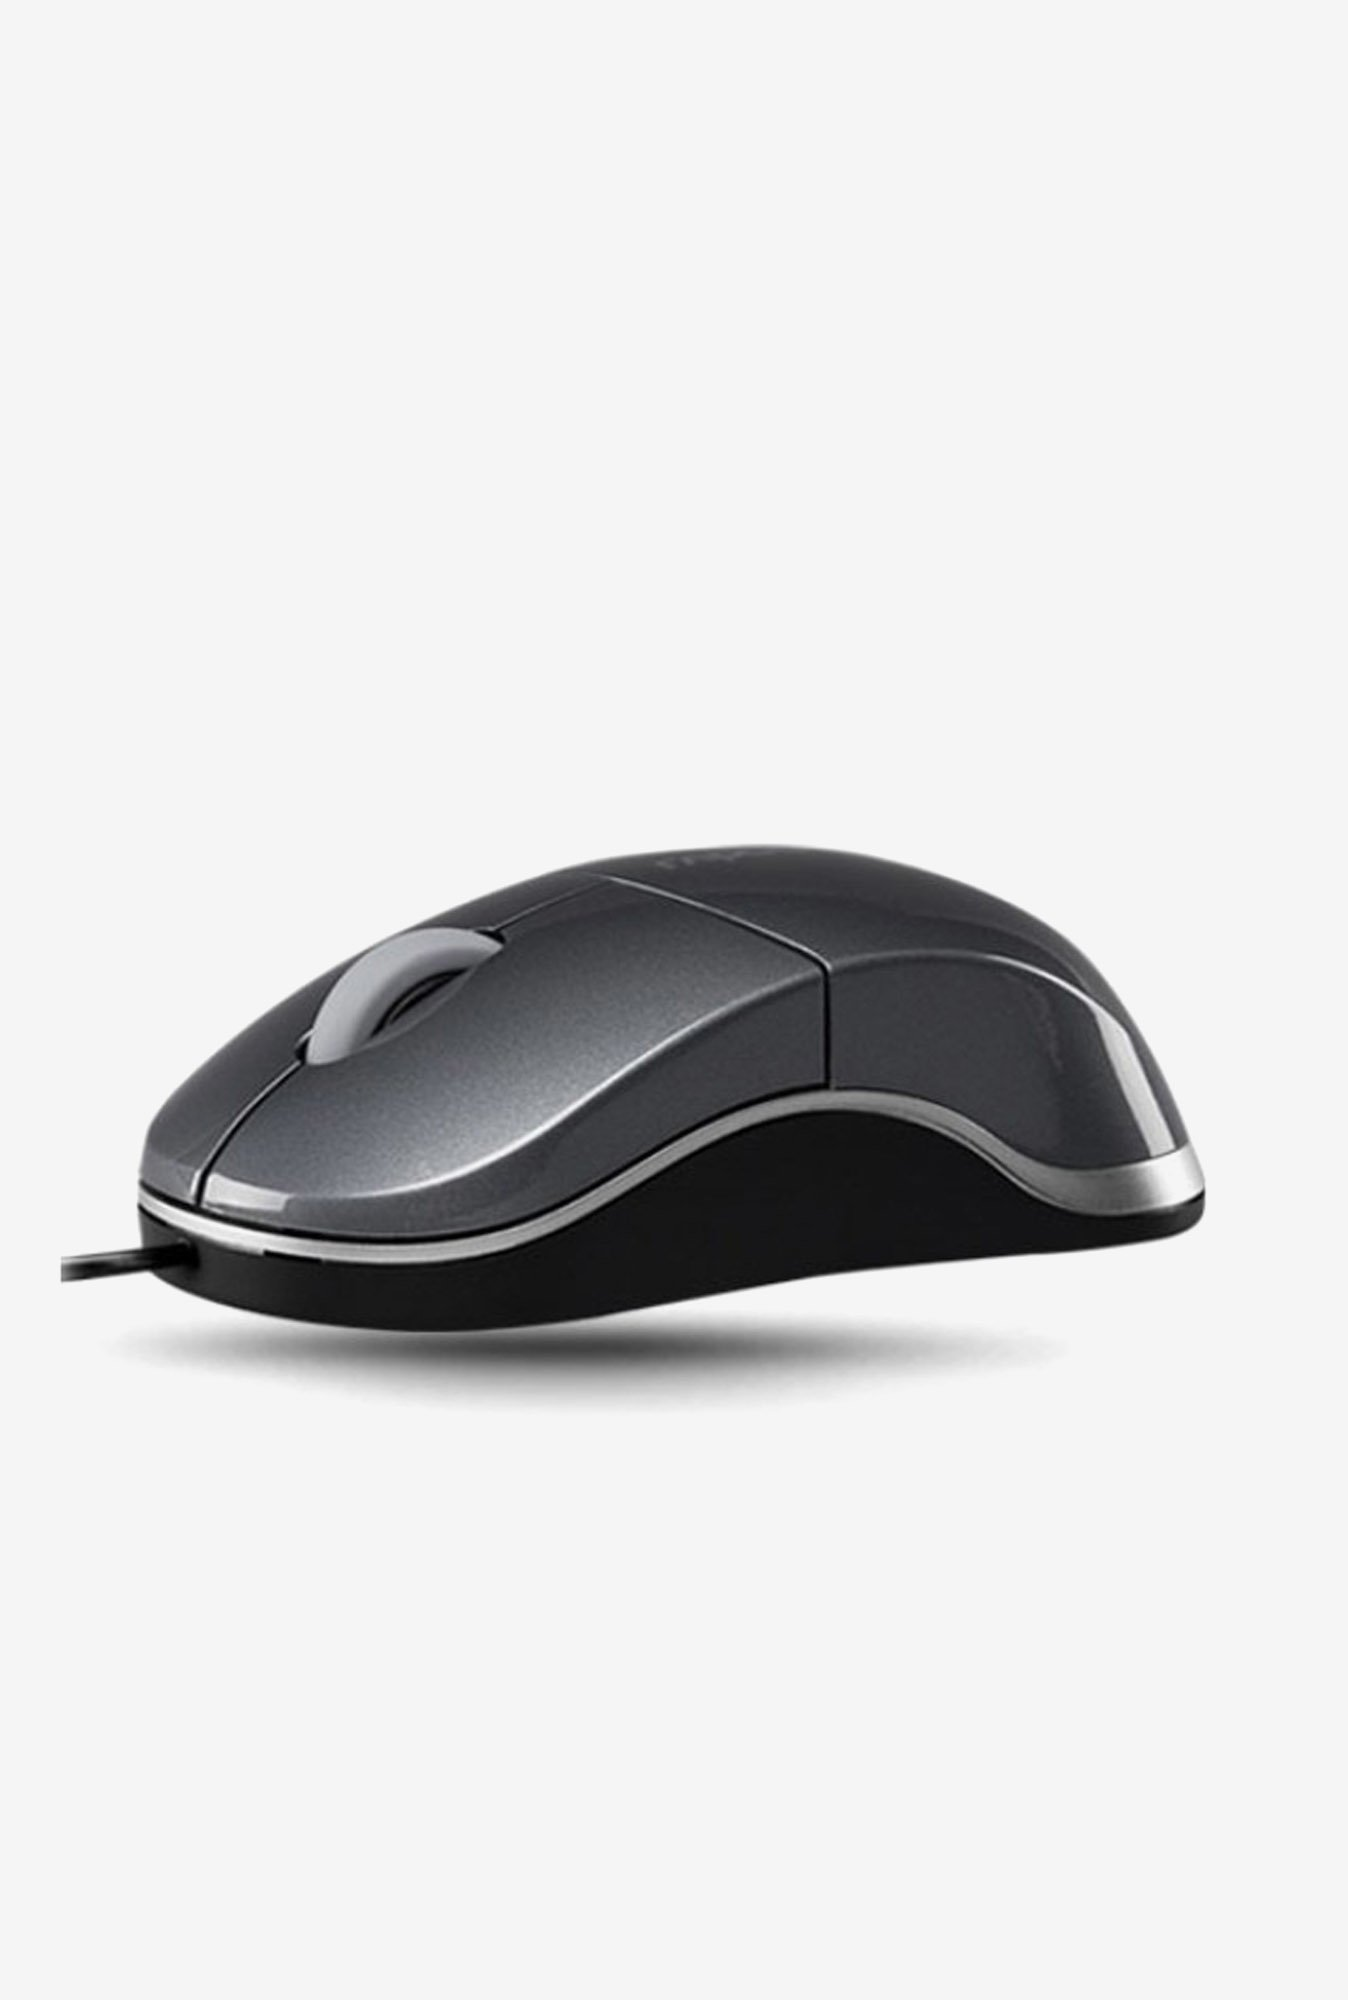 Rapoo Wired N6000 USB Mouse Grey